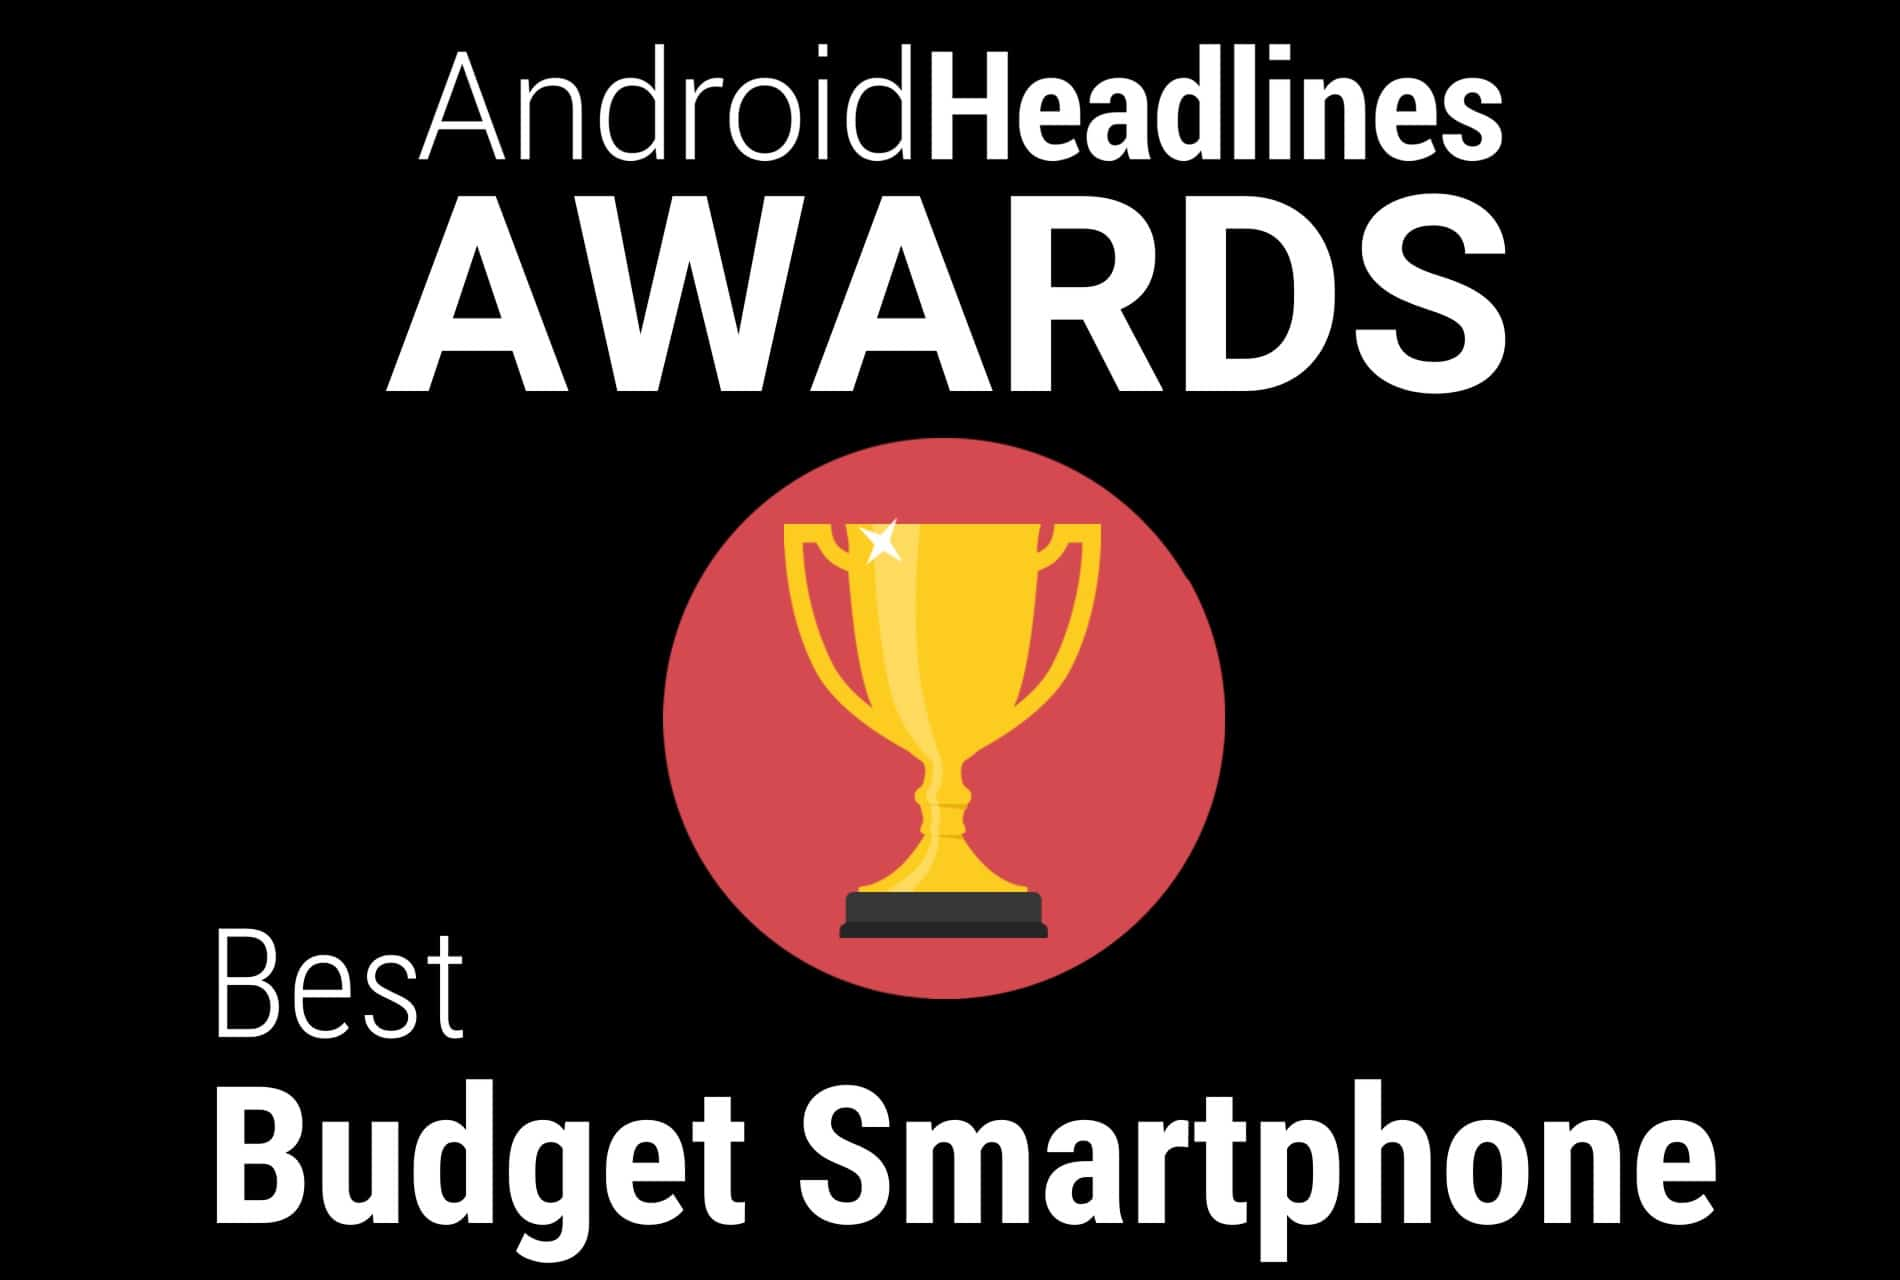 AH Awards Best Budget Smartphone